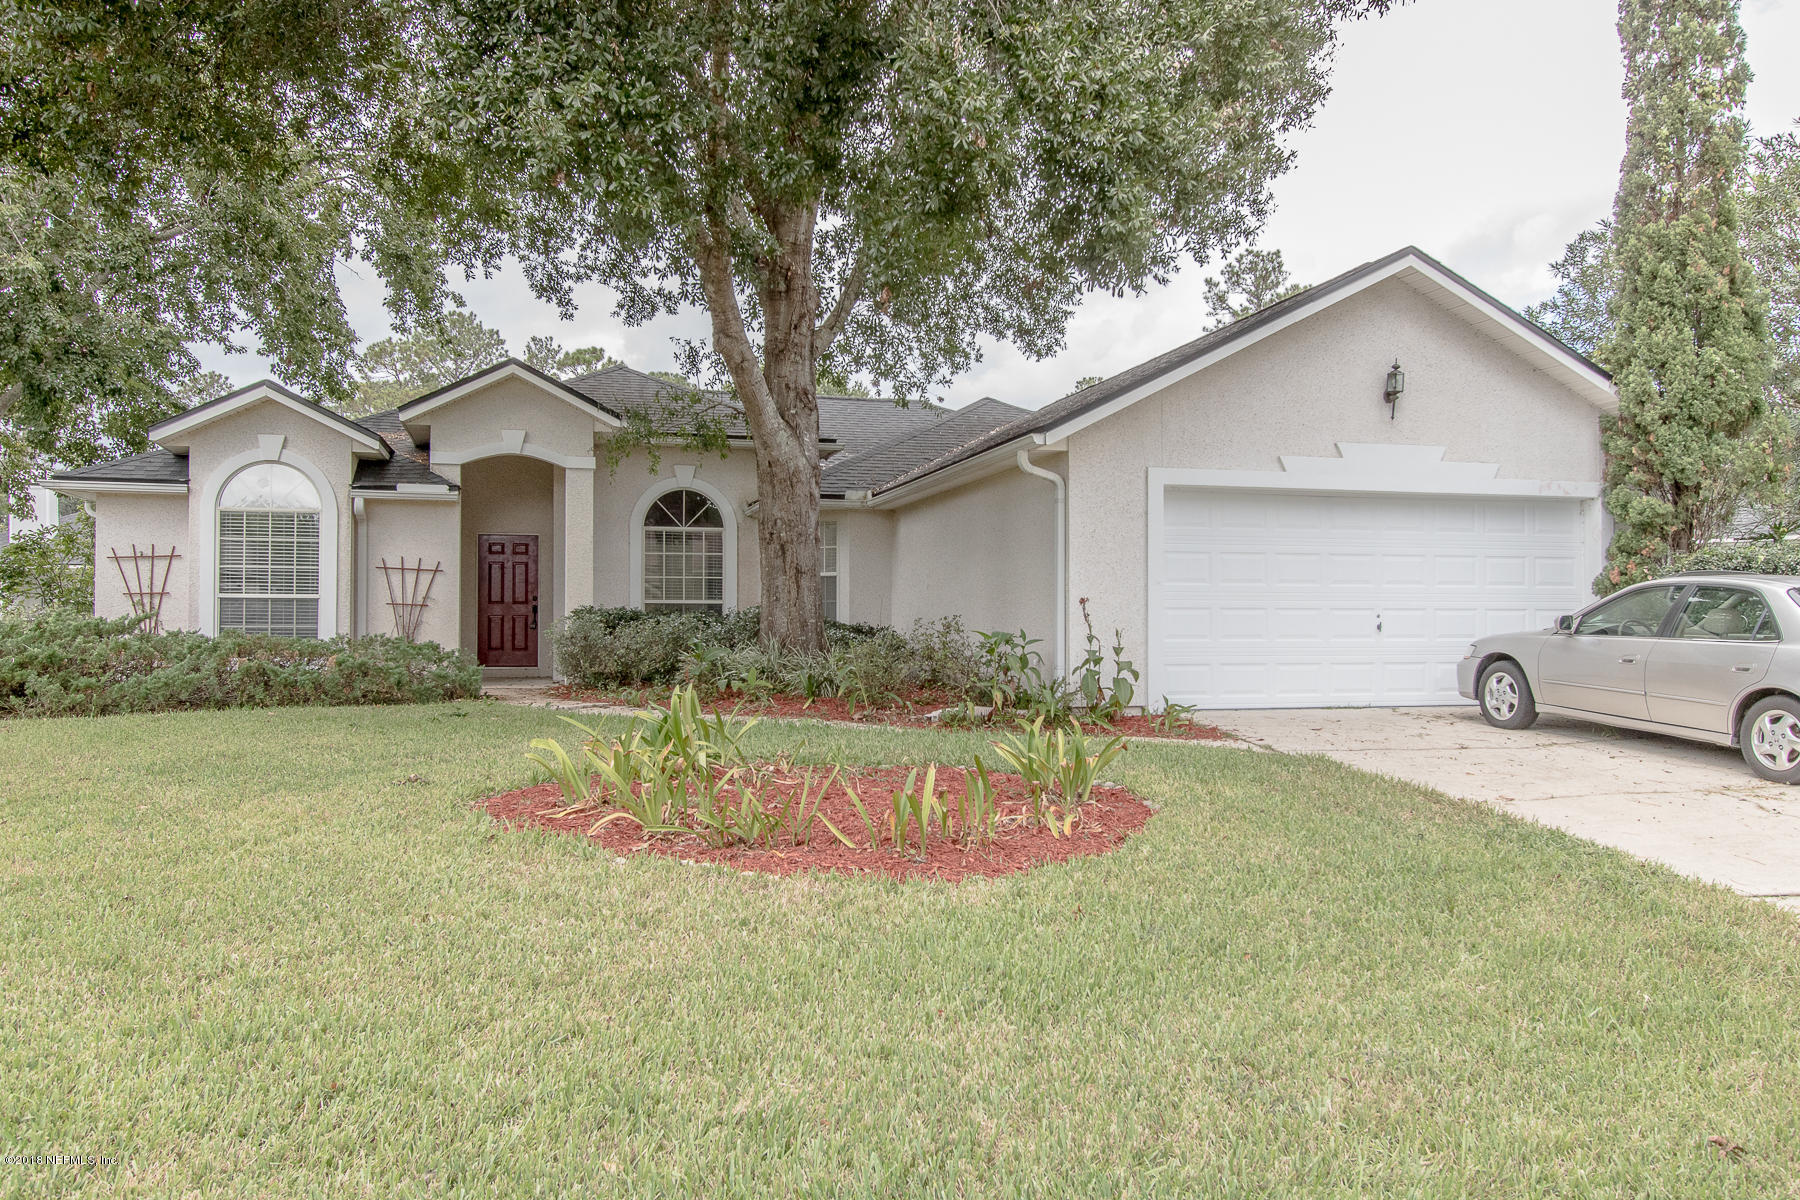 2048 WATER CREST, FLEMING ISLAND, FLORIDA 32003, 3 Bedrooms Bedrooms, ,2 BathroomsBathrooms,Residential - single family,For sale,WATER CREST,958959